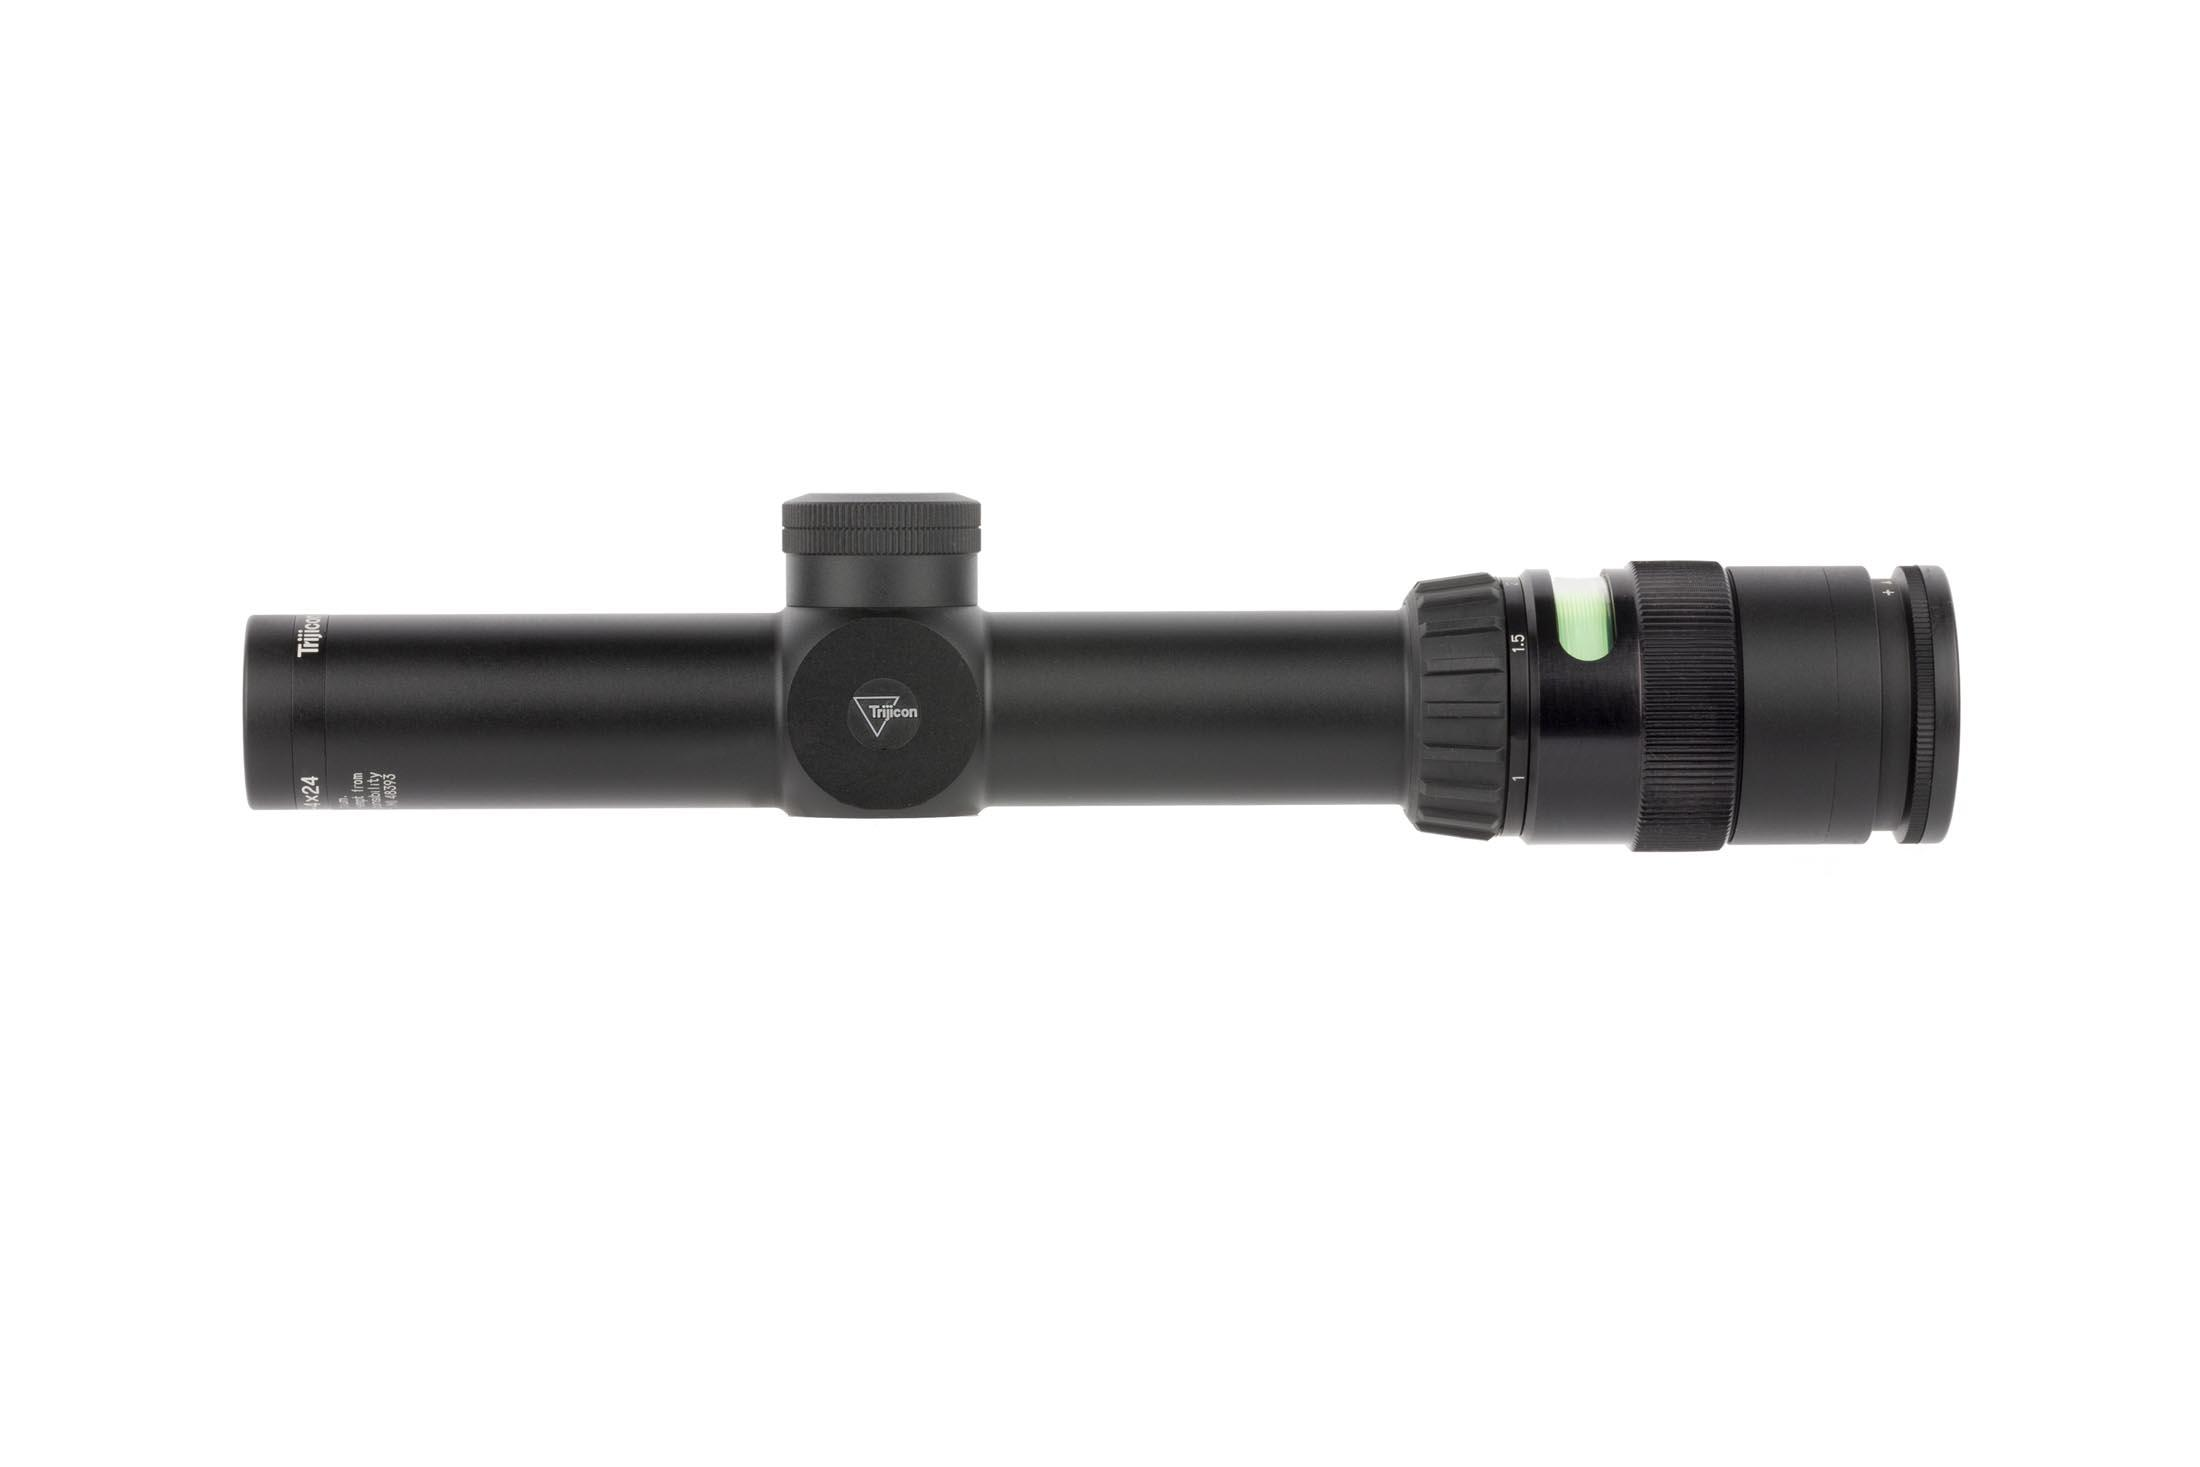 Trijicon Green TR24 illuminated rifle scope with triangle post is lightweight with a smooth magnification range from 1x - 4x